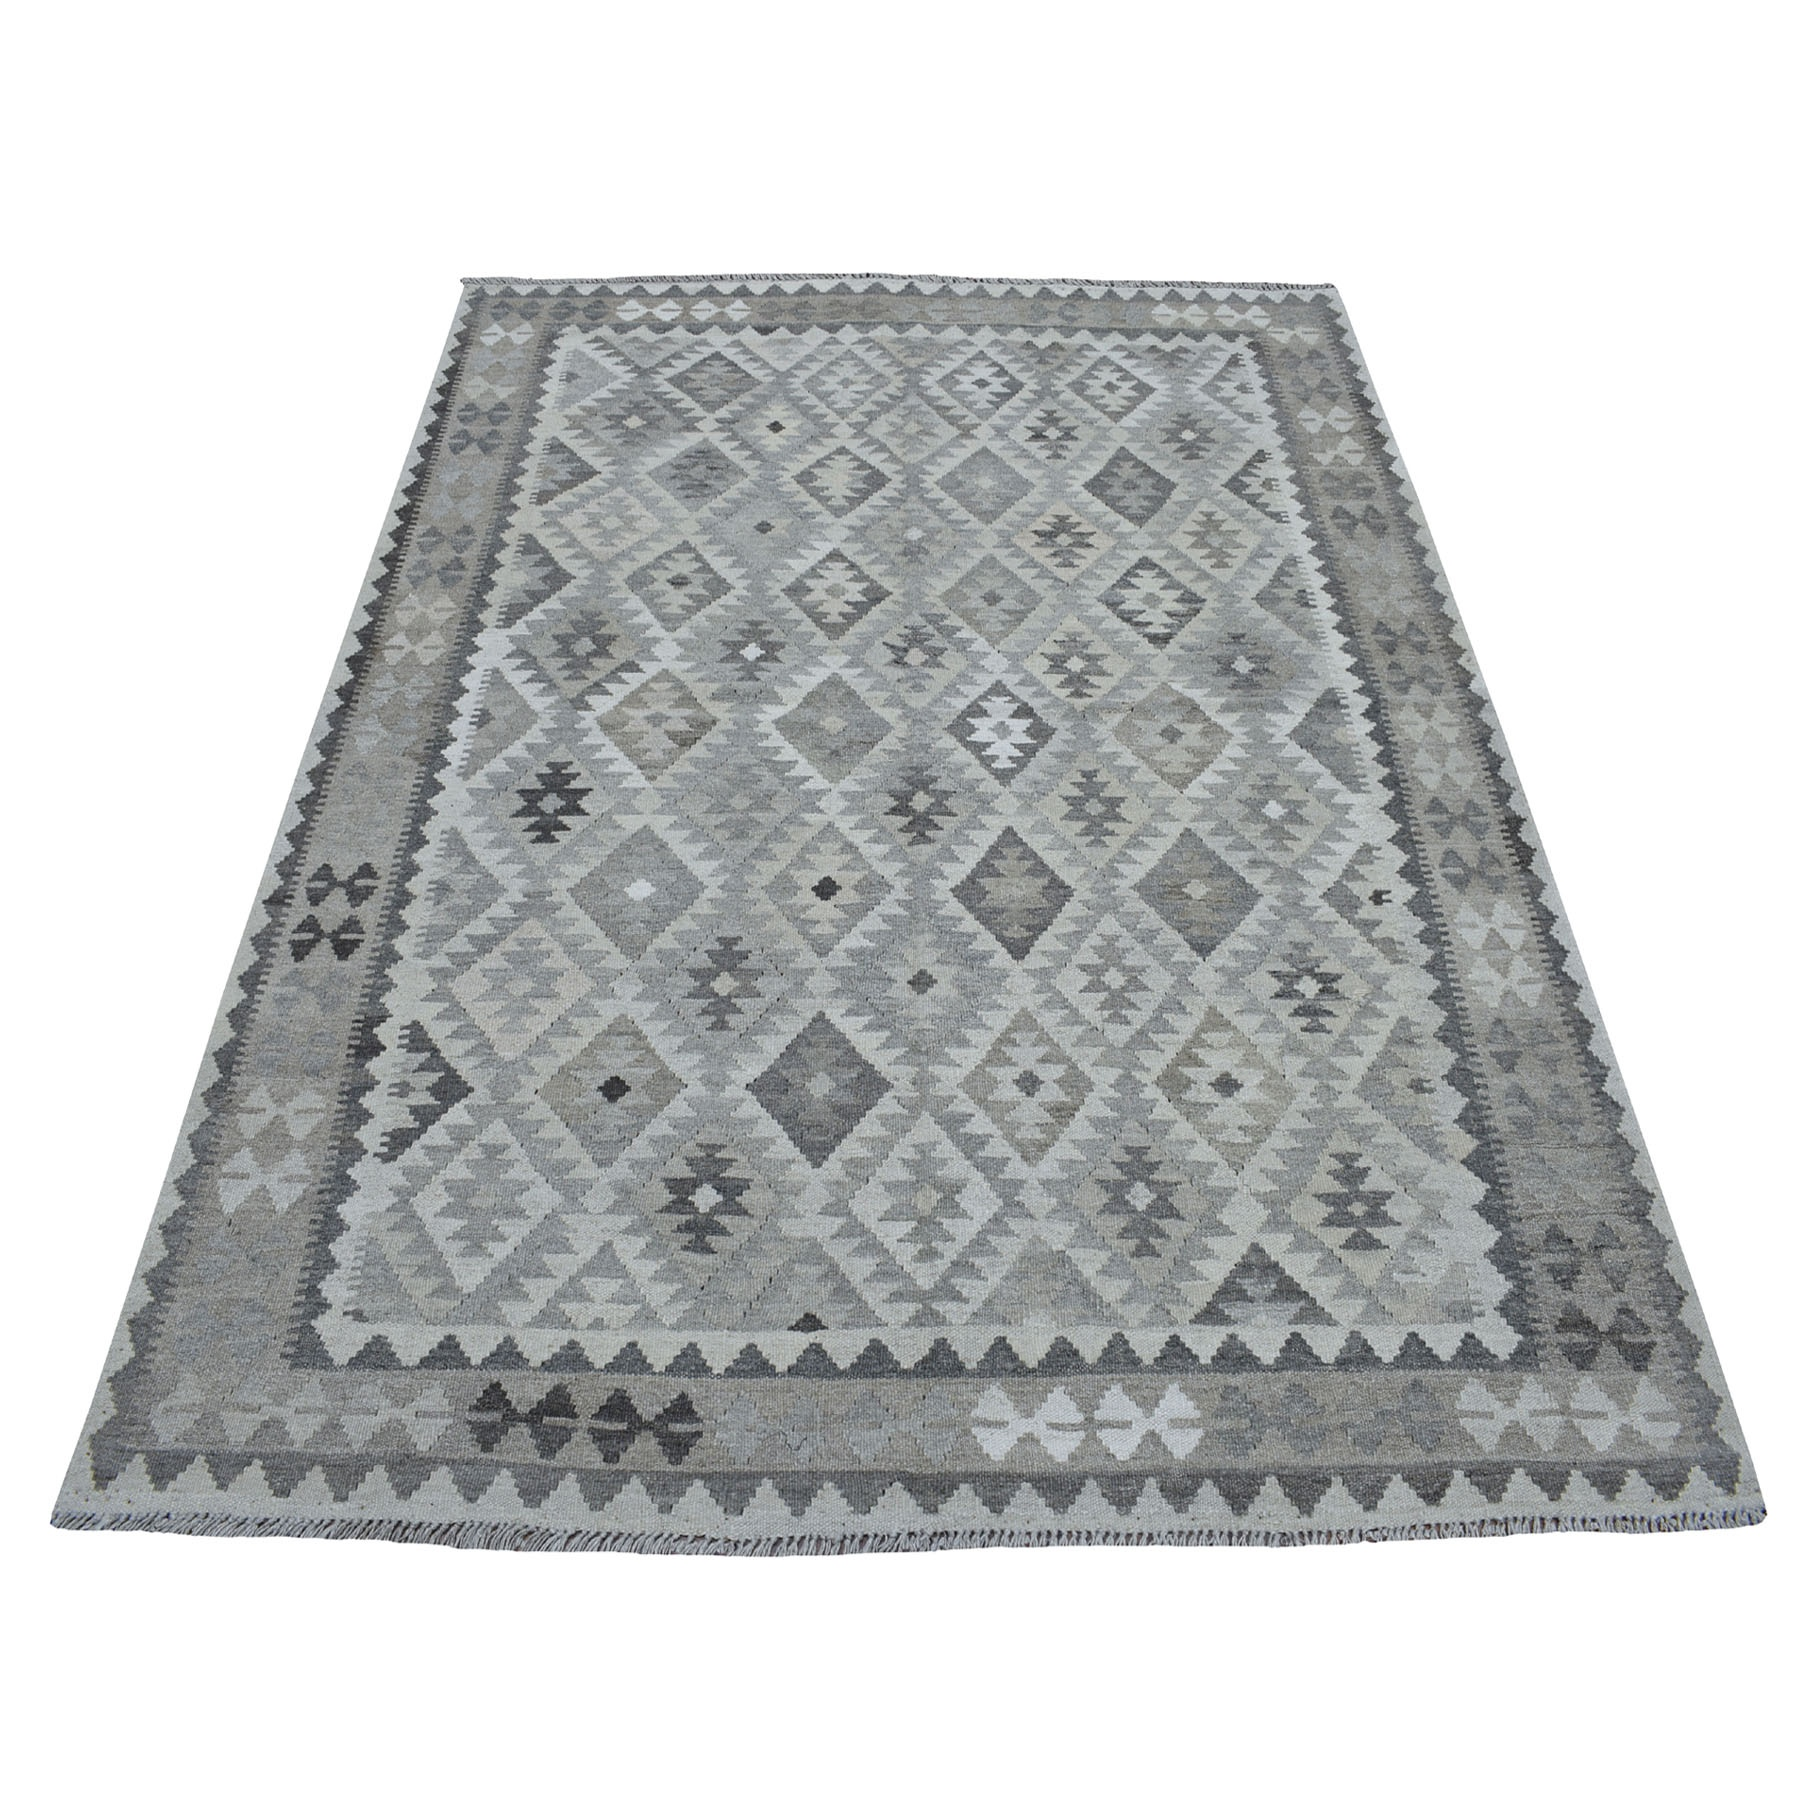 """5'X6'6"""" Undyed Natural Wool Afghan Kilim Reversible Hand Woven Oriental Rug moaec0a6"""